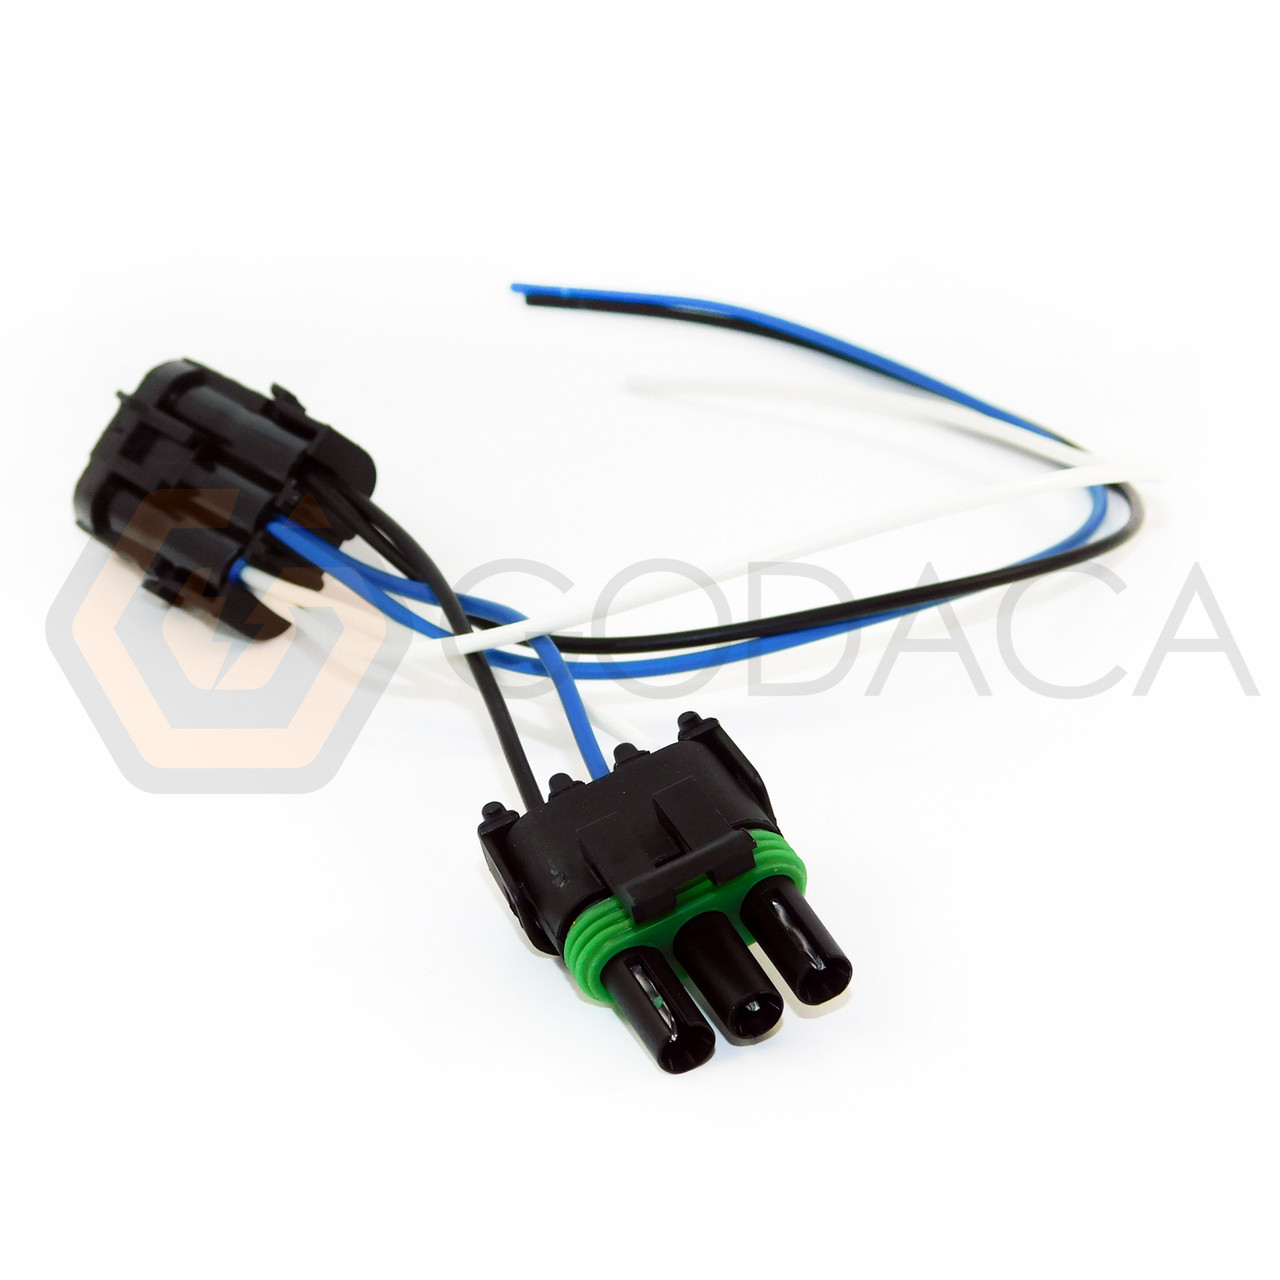 1x Connector Harness adapter Breakout for TPS GM Buick Jeep - Godaca on gm wire connectors, automotive bullet connectors, pigtail wire connectors, gm terminal connectors, gm fuel line connectors, gm coil connectors, gm wiring harness mounts, heavy duty connectors, auto headlight connectors, gm wiring harness diagram, electrical wiring pigtail connectors, gm hose connectors, gm wiring harness adapter, gm trailer wiring harness, gm wiring harness clips, gm truck wiring harness, gm electrical connectors, gm factory wiring diagram, gm engine wiring harness, gm factory radio wiring harness,